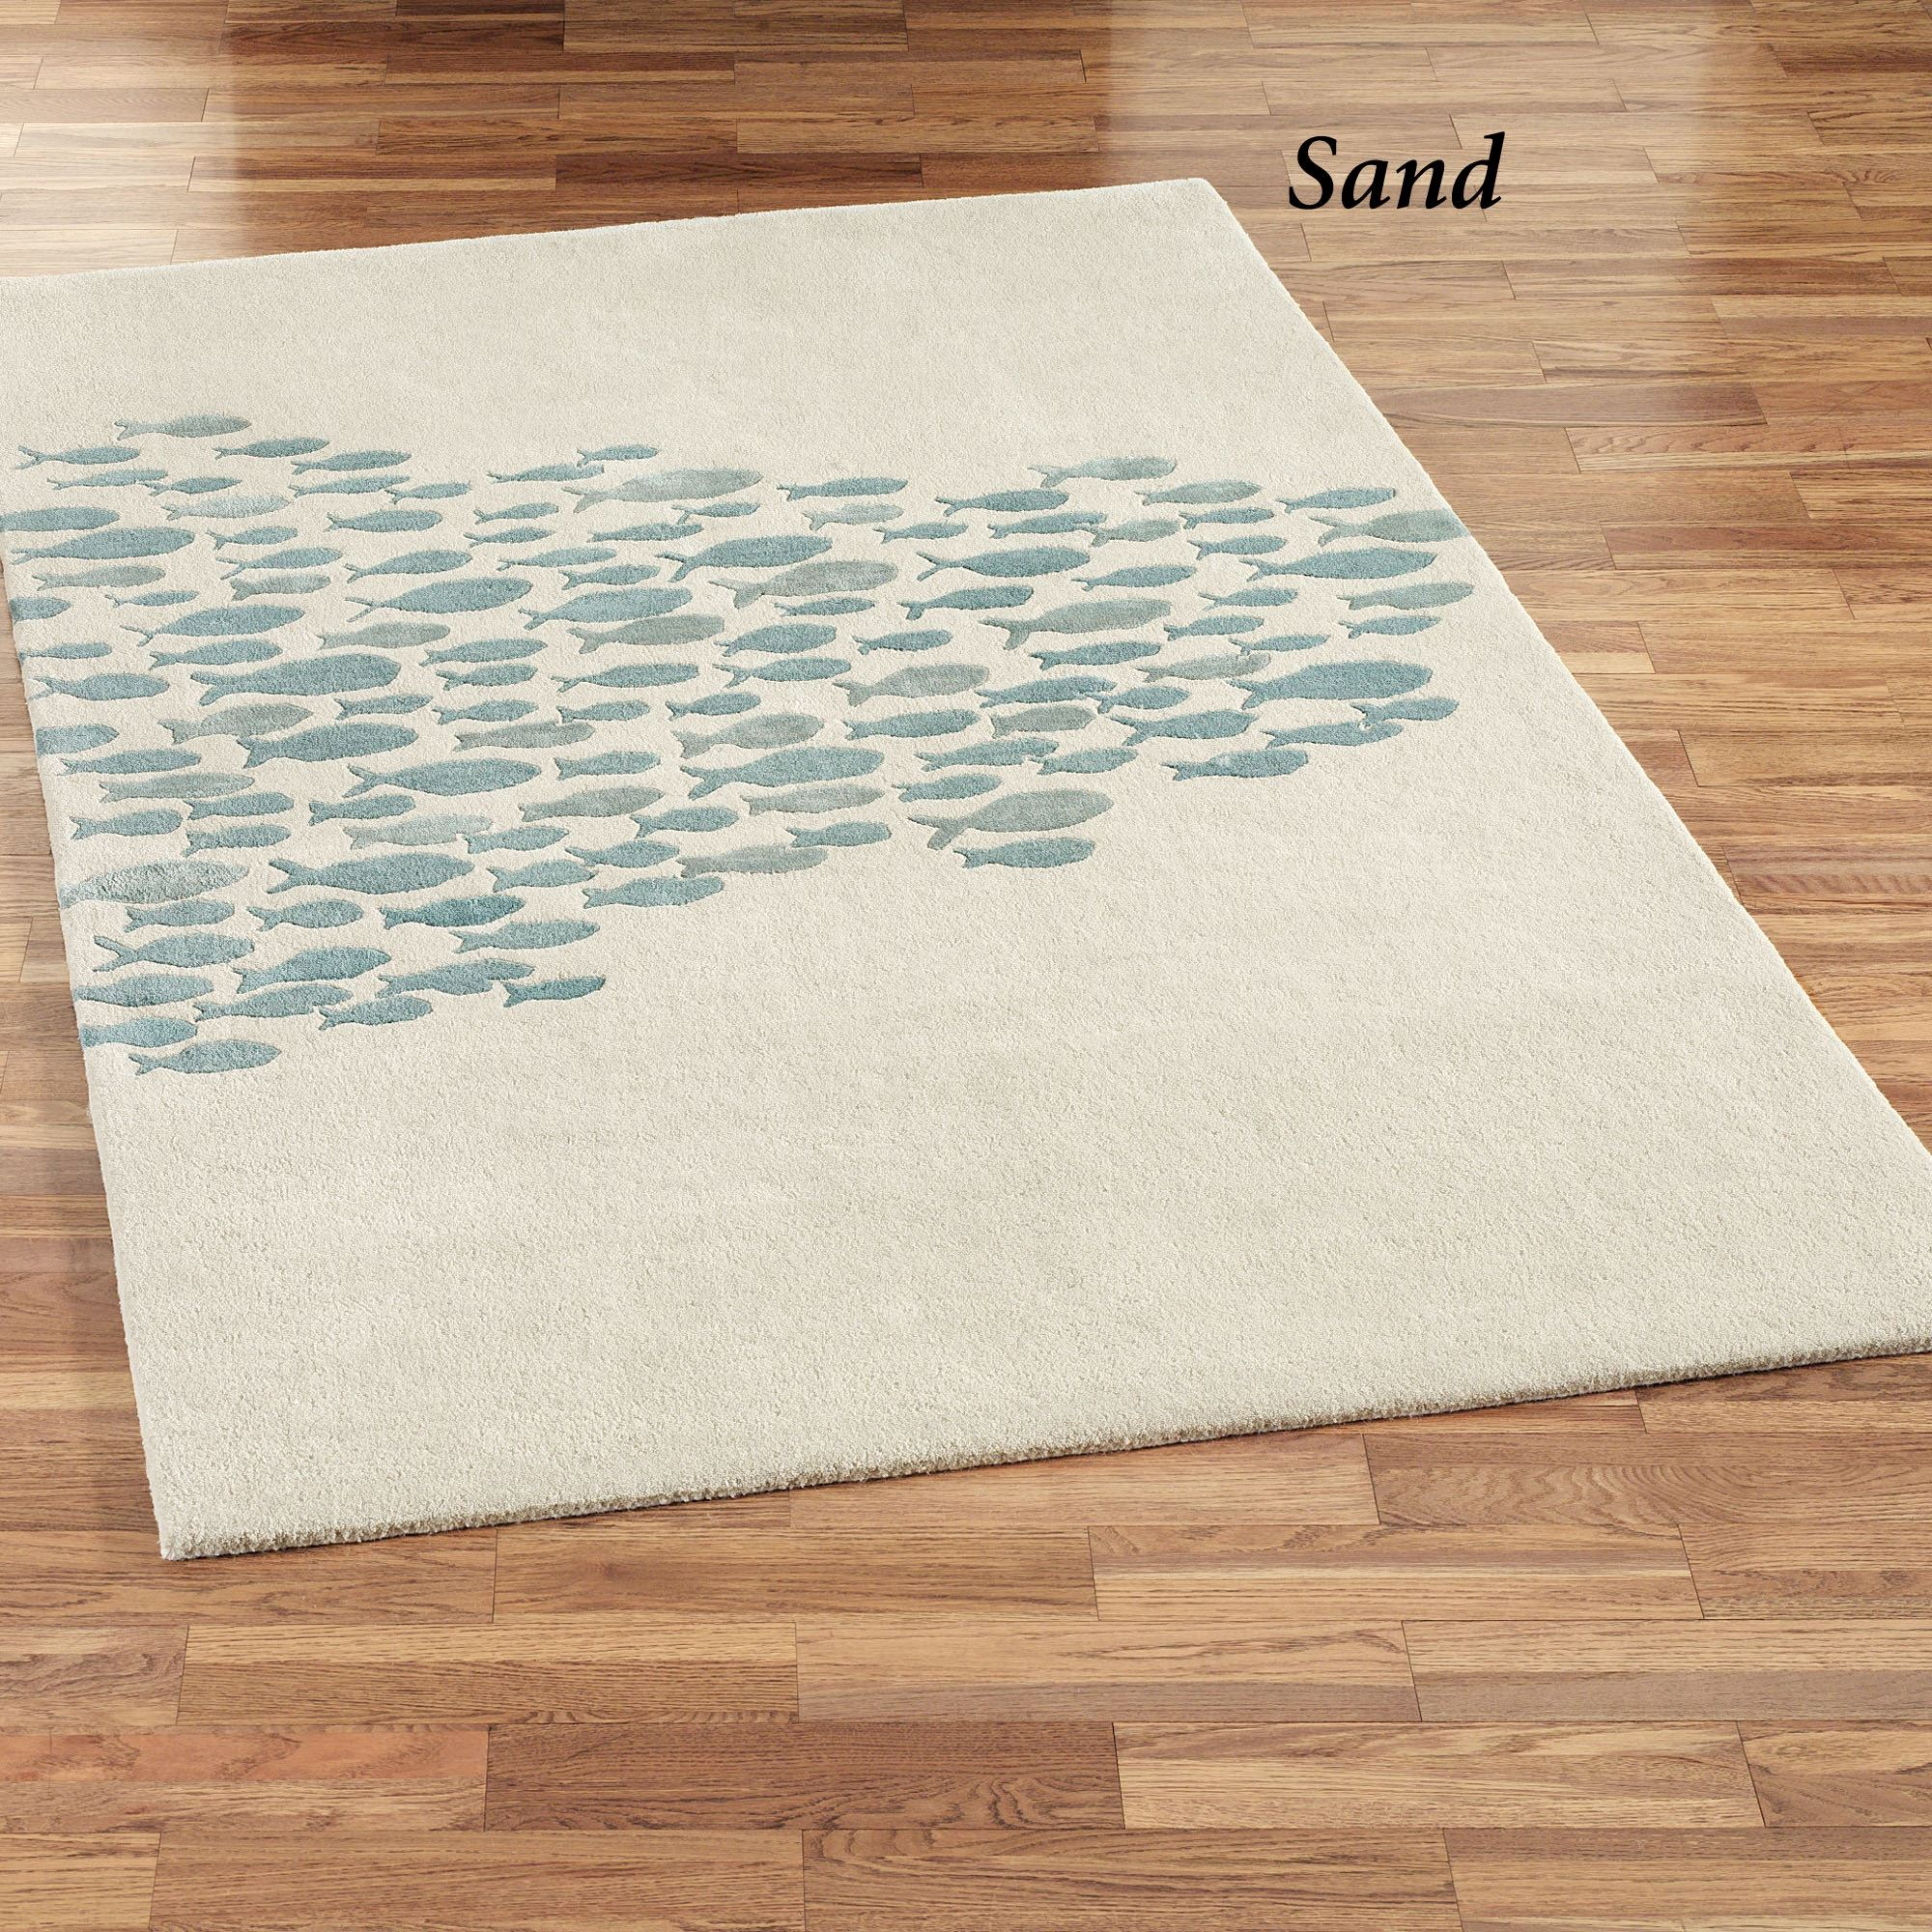 Schooled Fish Wool Area Rugs